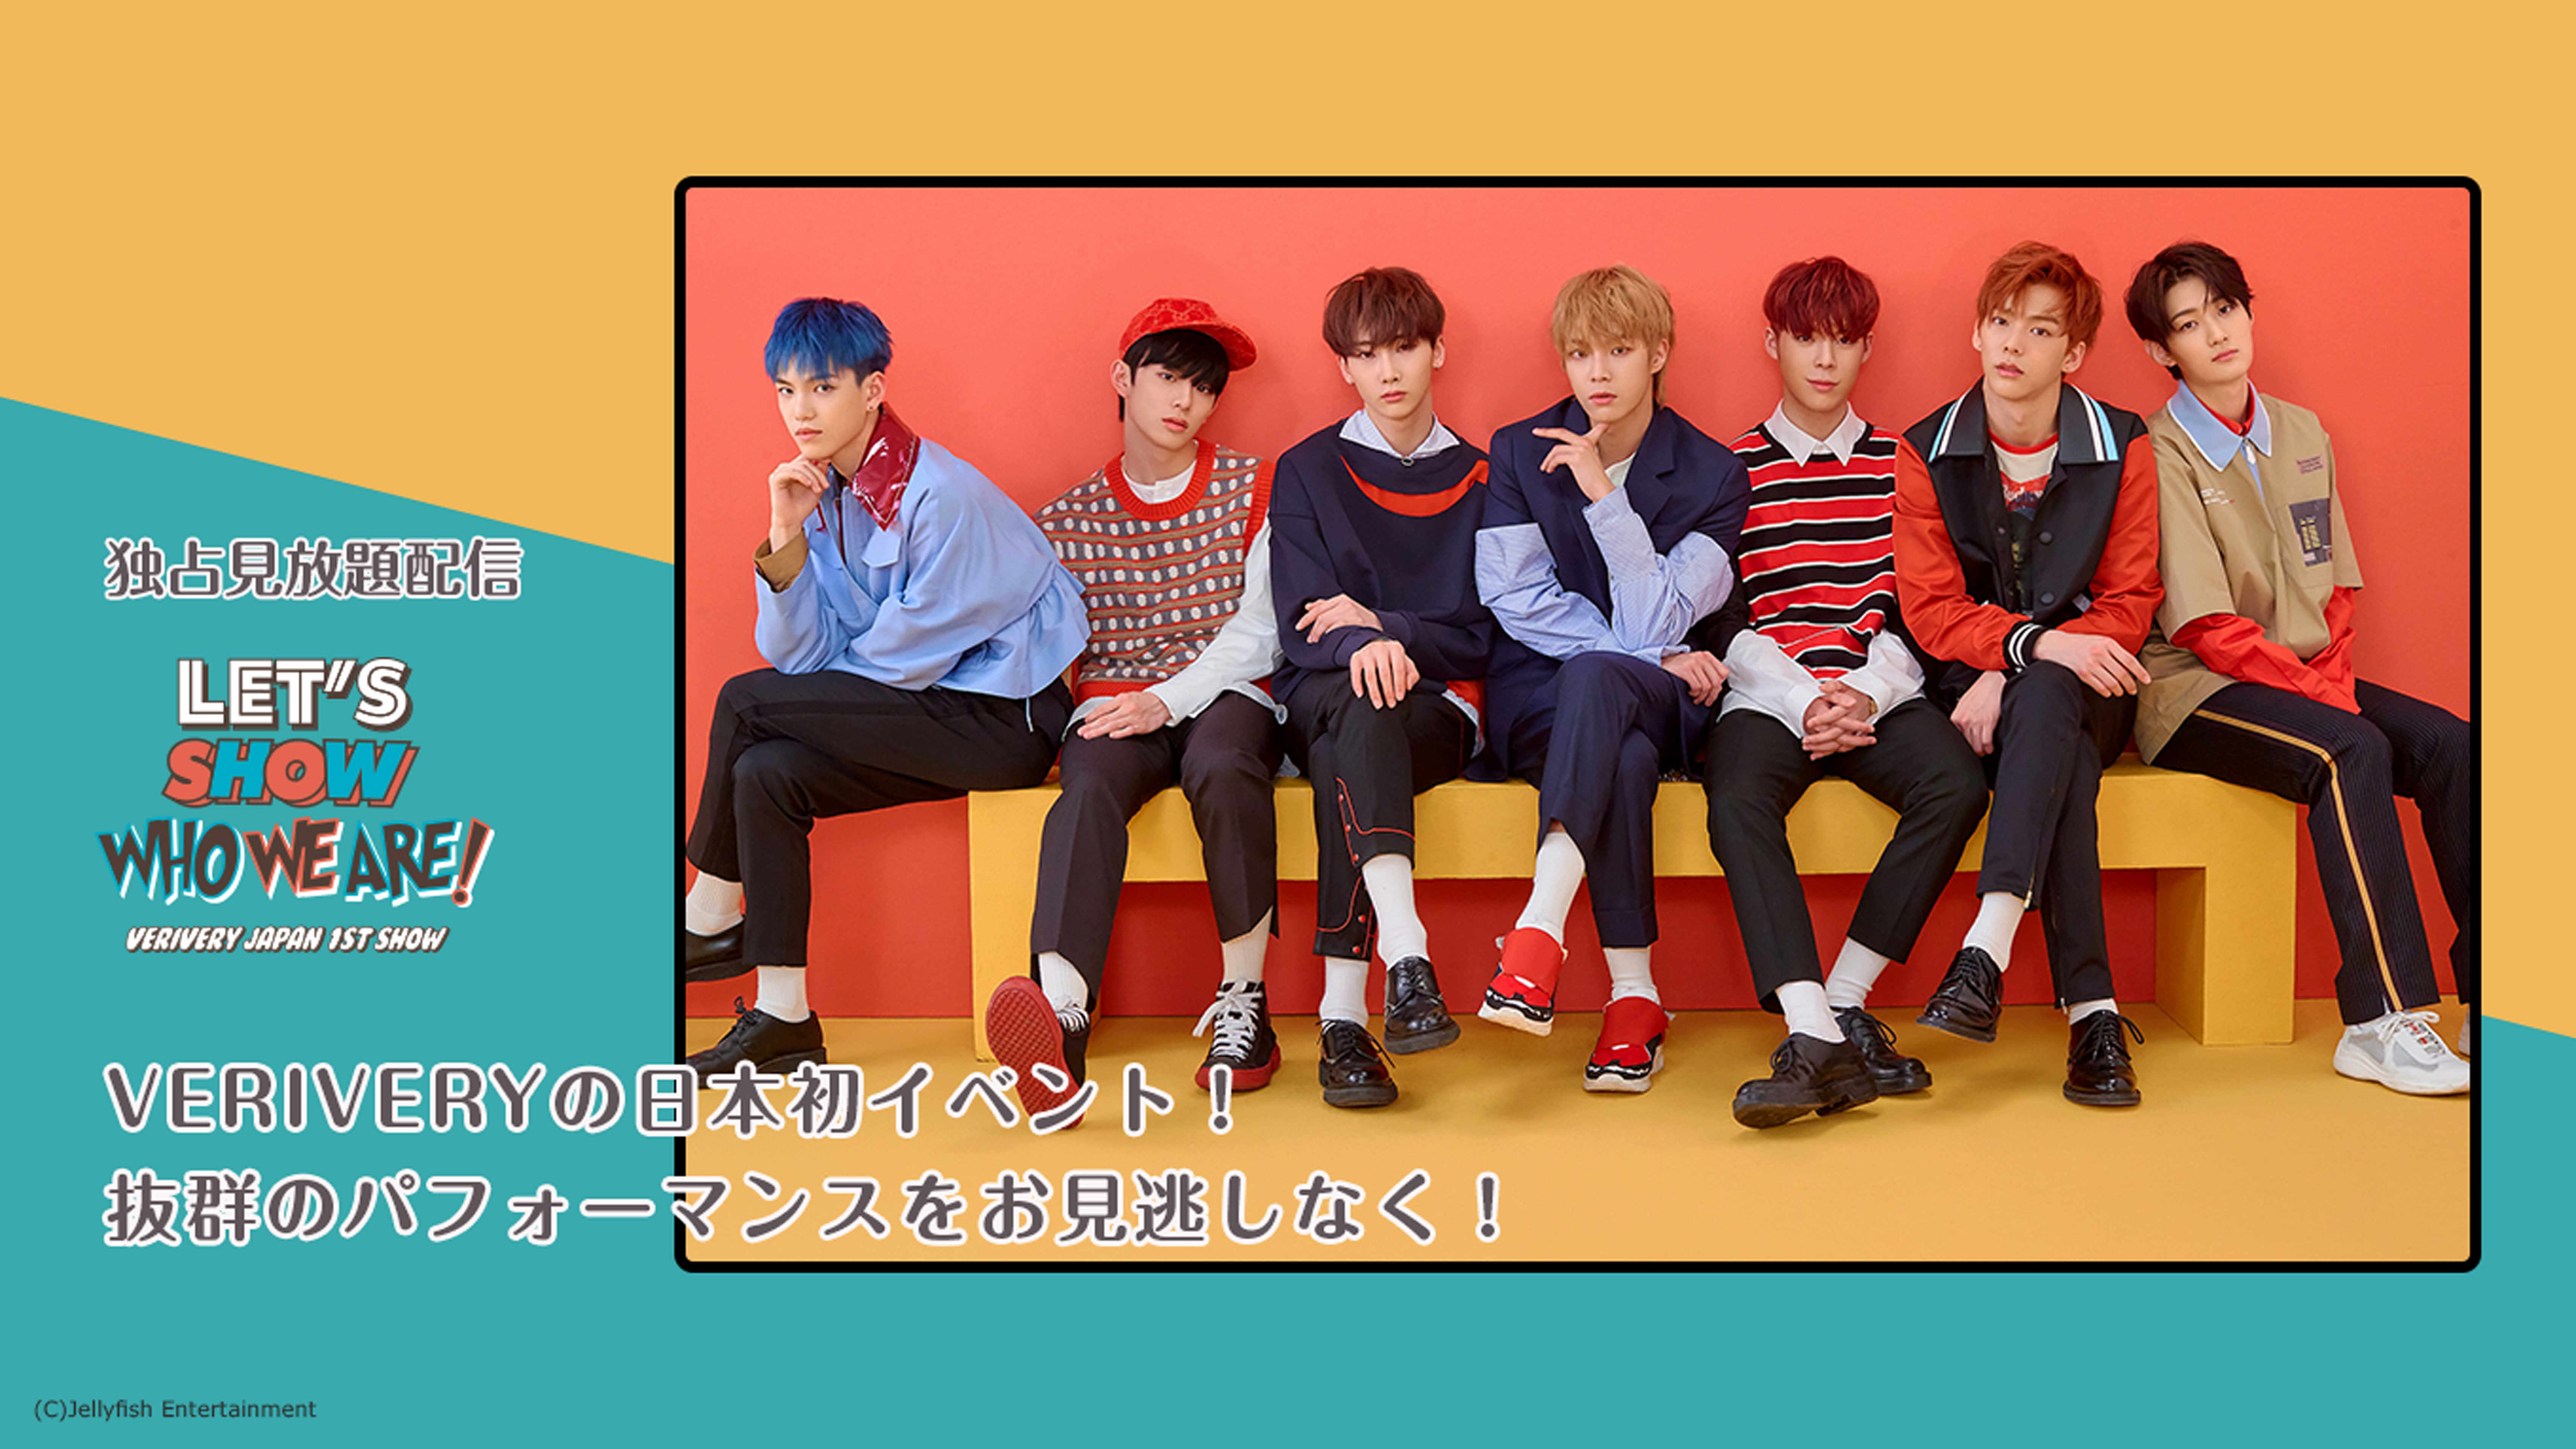 VERIVERY Japan 1st Show ~Let's show who we are~画像